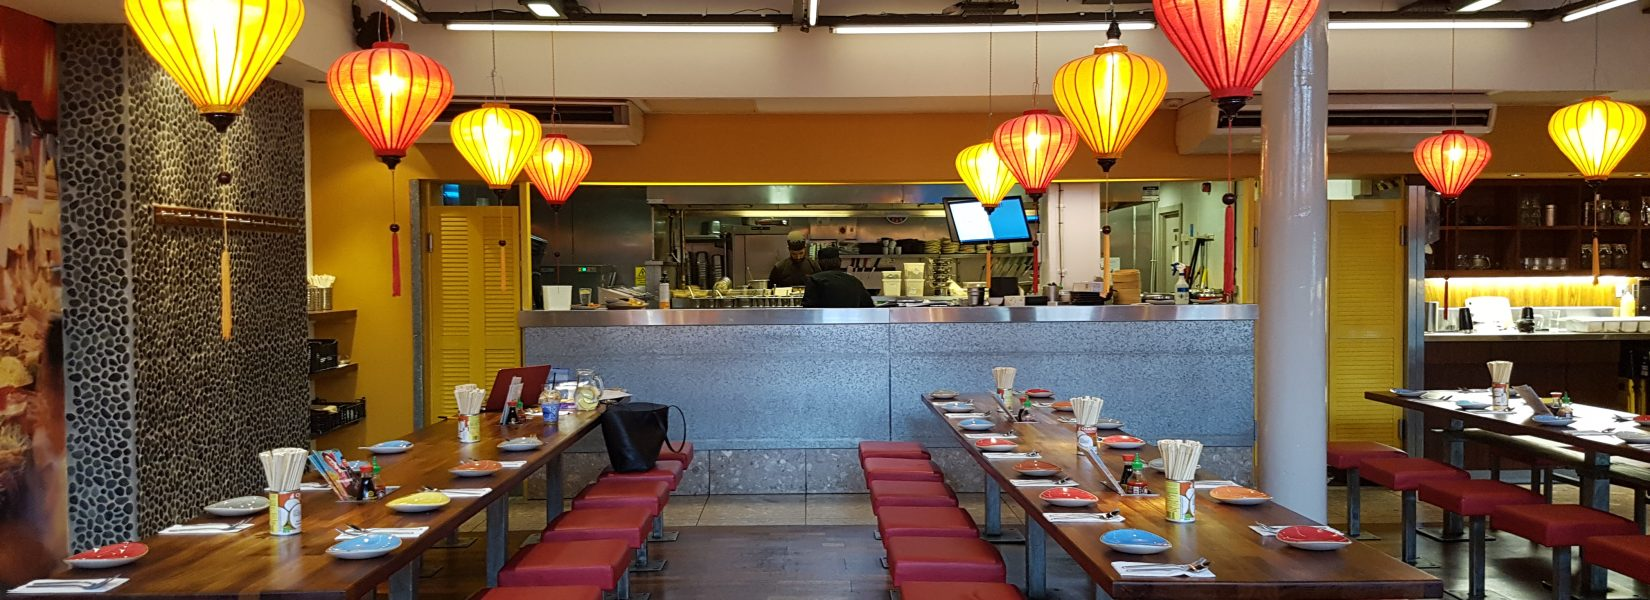 Manchester | Pan-Asian food adventures @ Tampopo restaurant